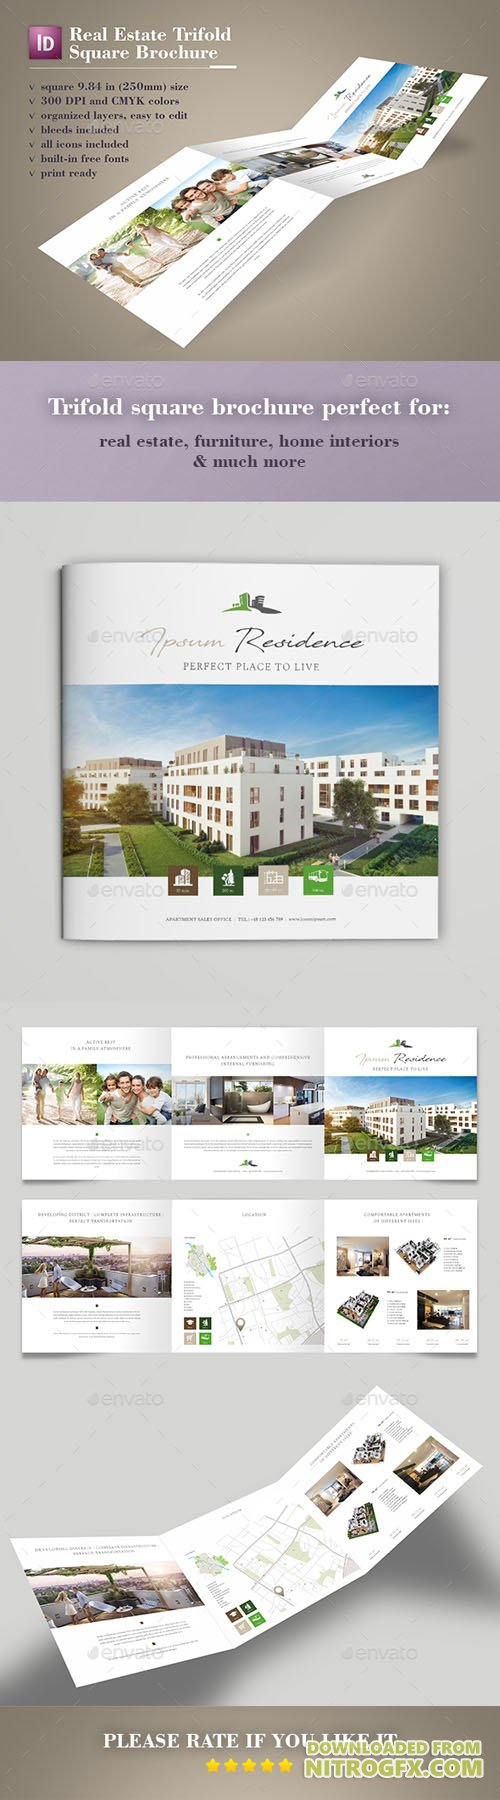 GraphicRiver - Real Estate Trifold Square Brochure 20355847